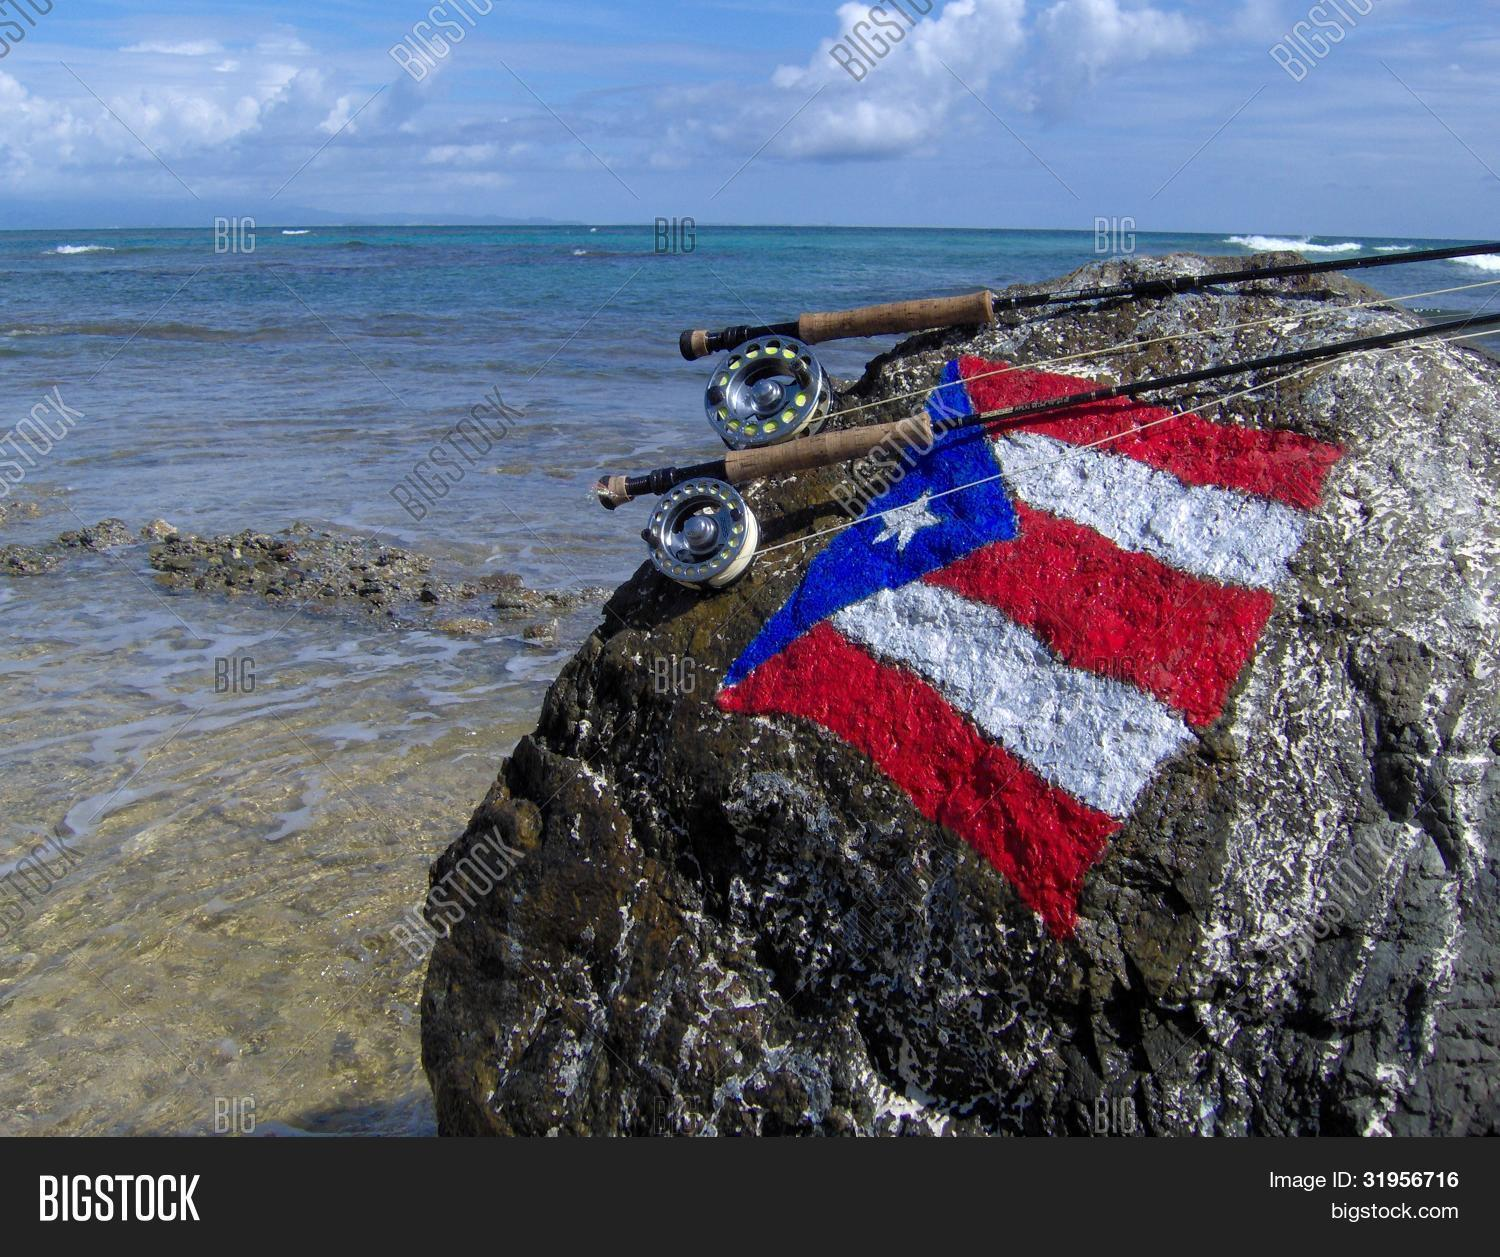 Saltwater fly fishing puerto rico image photo bigstock for Fly fishing puerto rico